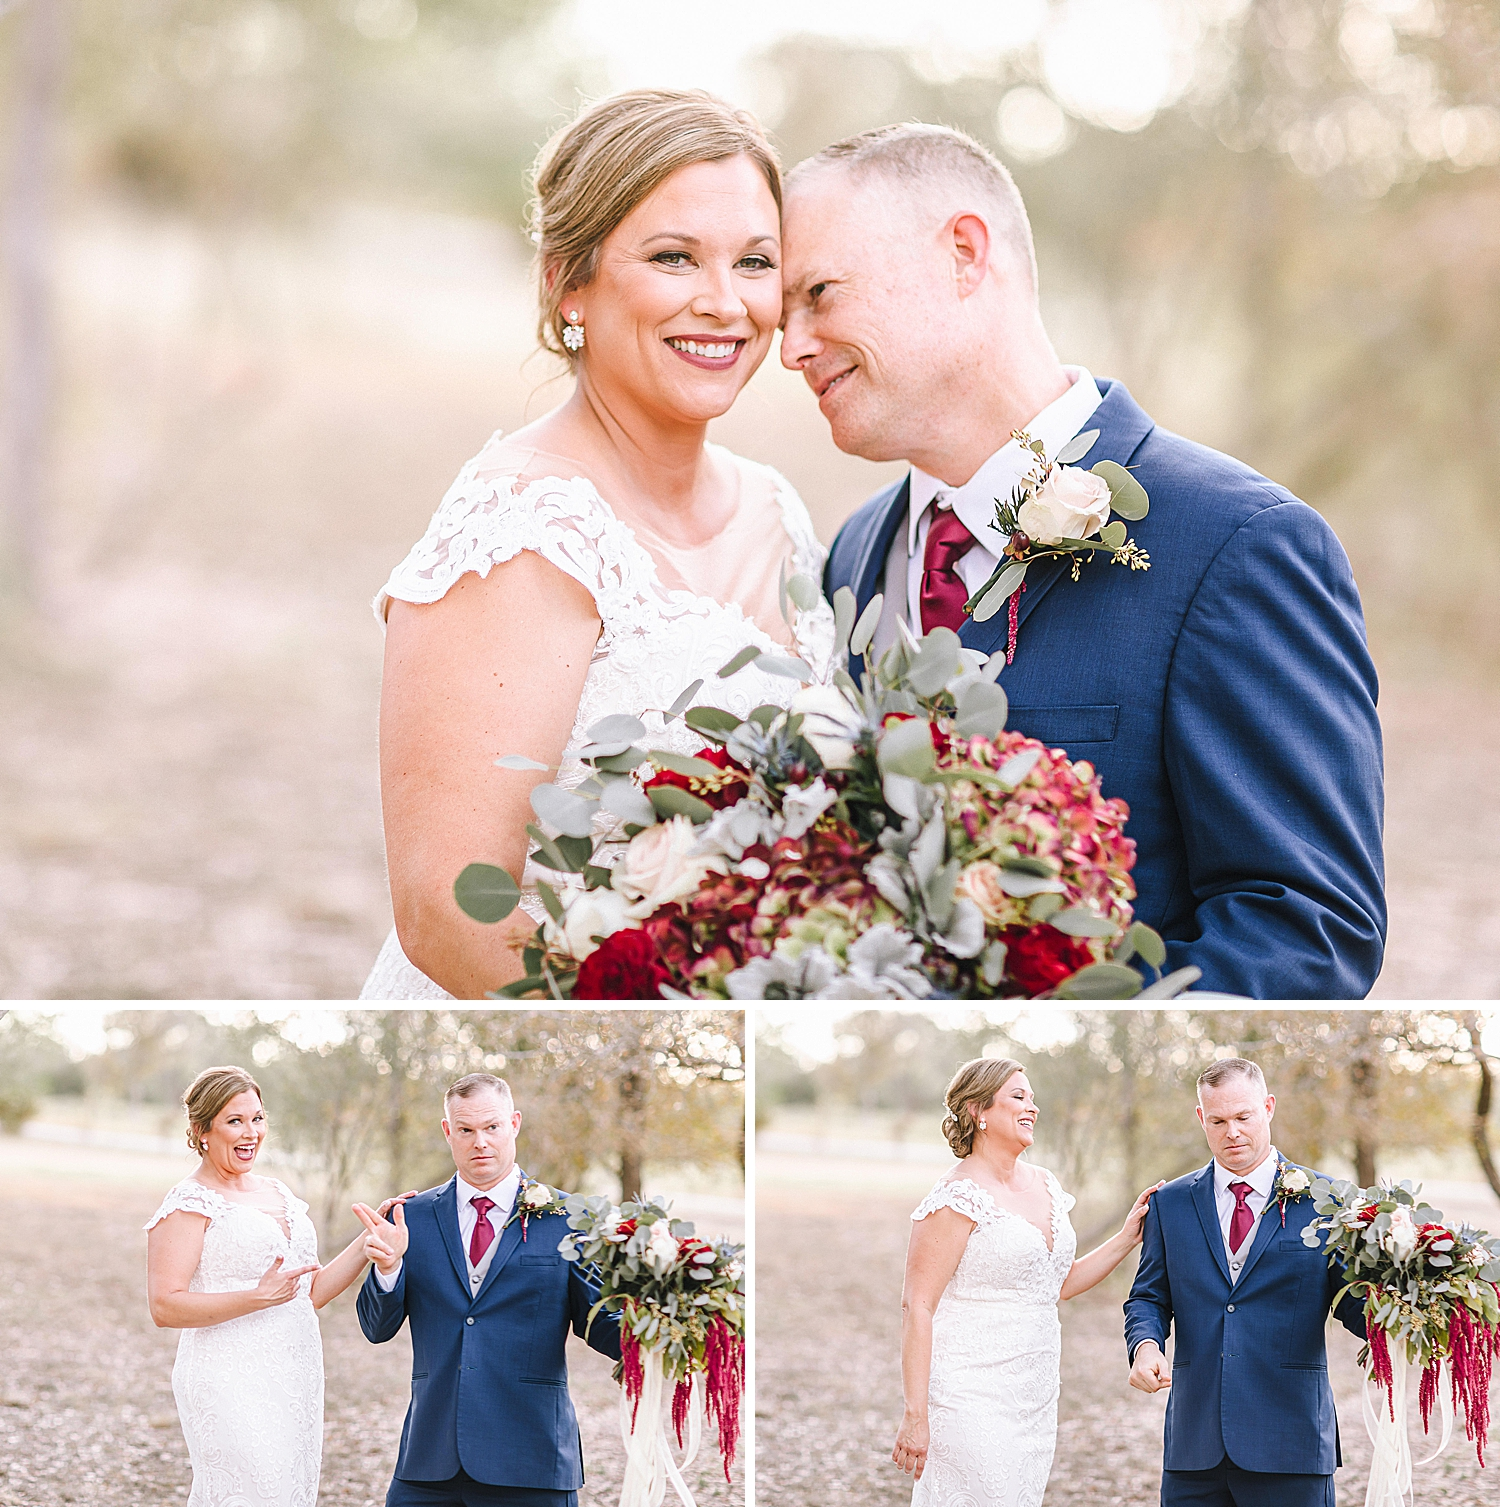 Geronimo-Oaks-Wedding-Venue-Seguin-Texas-Elegant-Navy-Burgundy-Wedding-Carly-Barton-Photography_0055.jpg